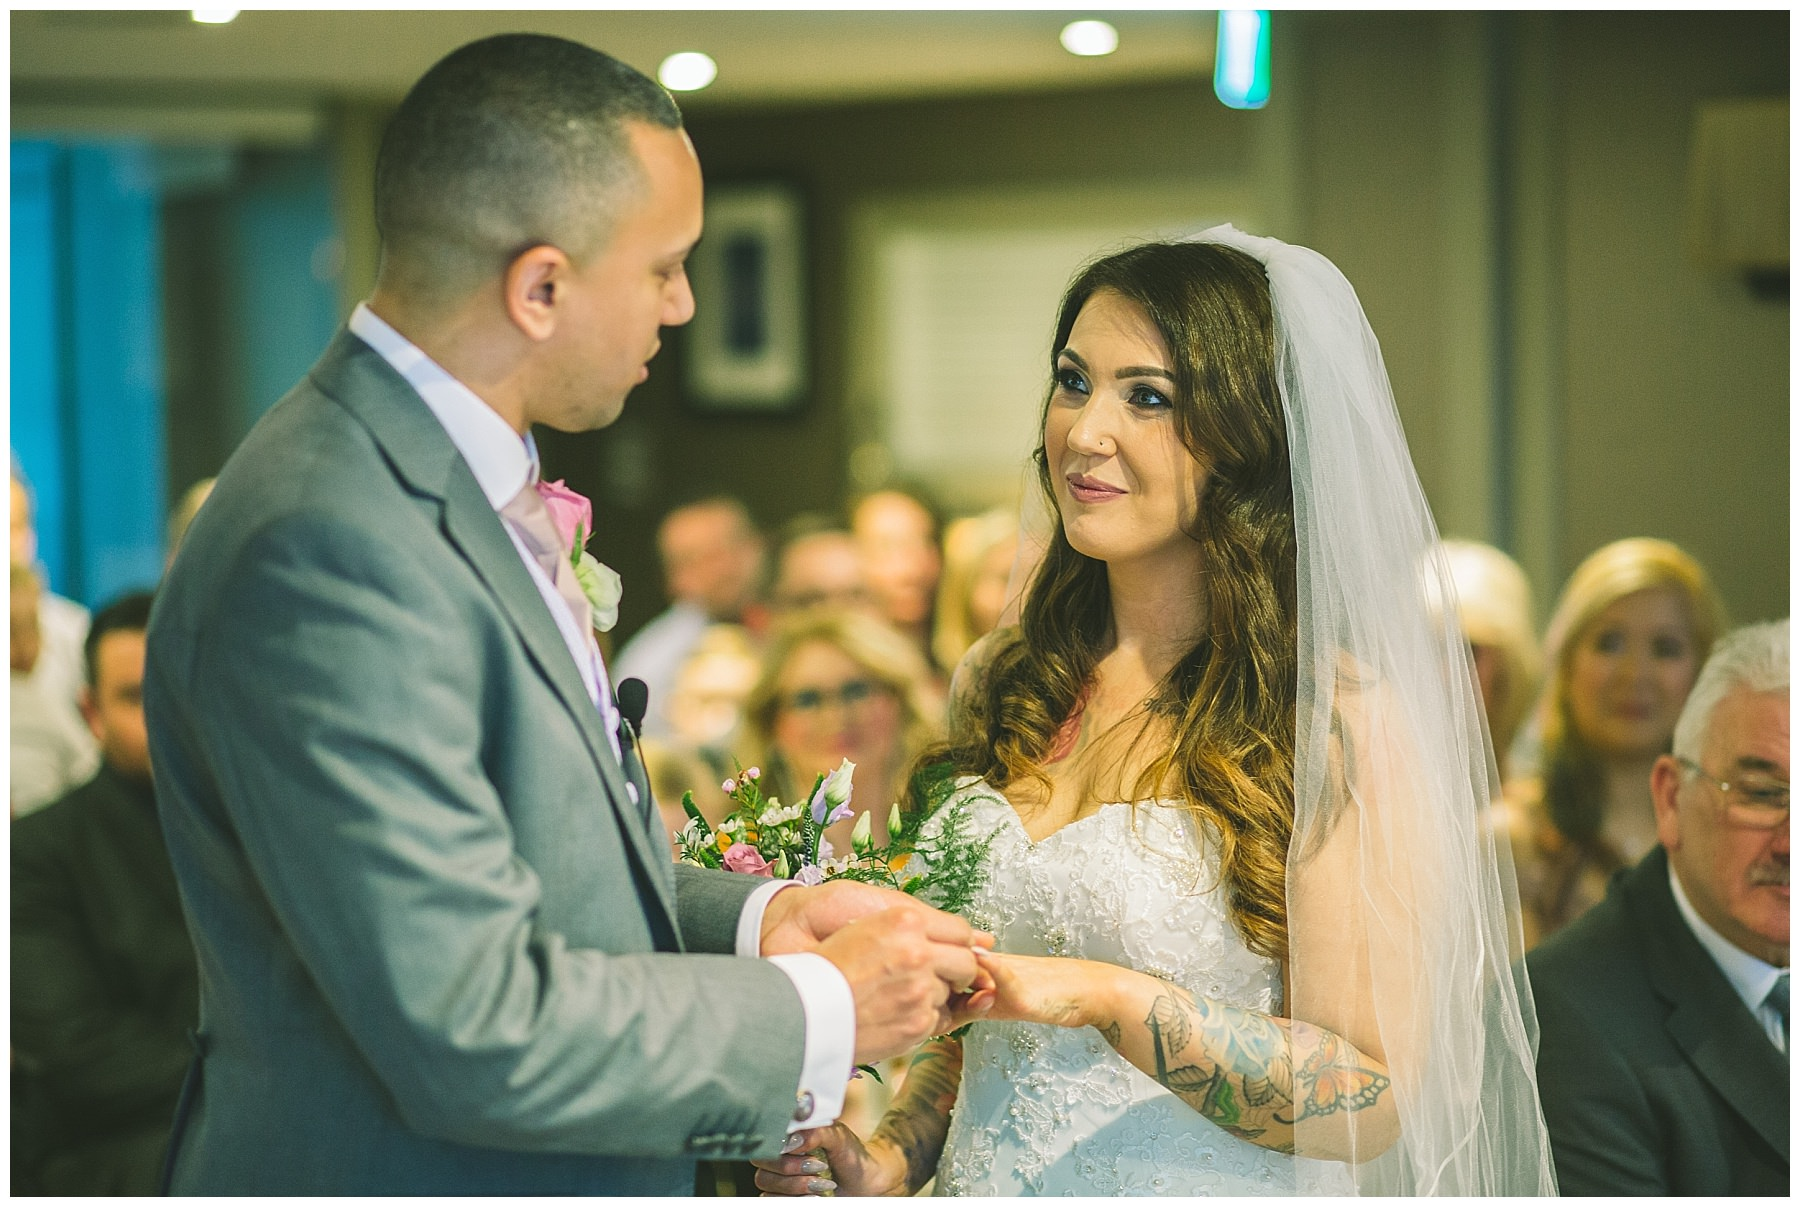 bride and groom share a moment during wedding ceremony